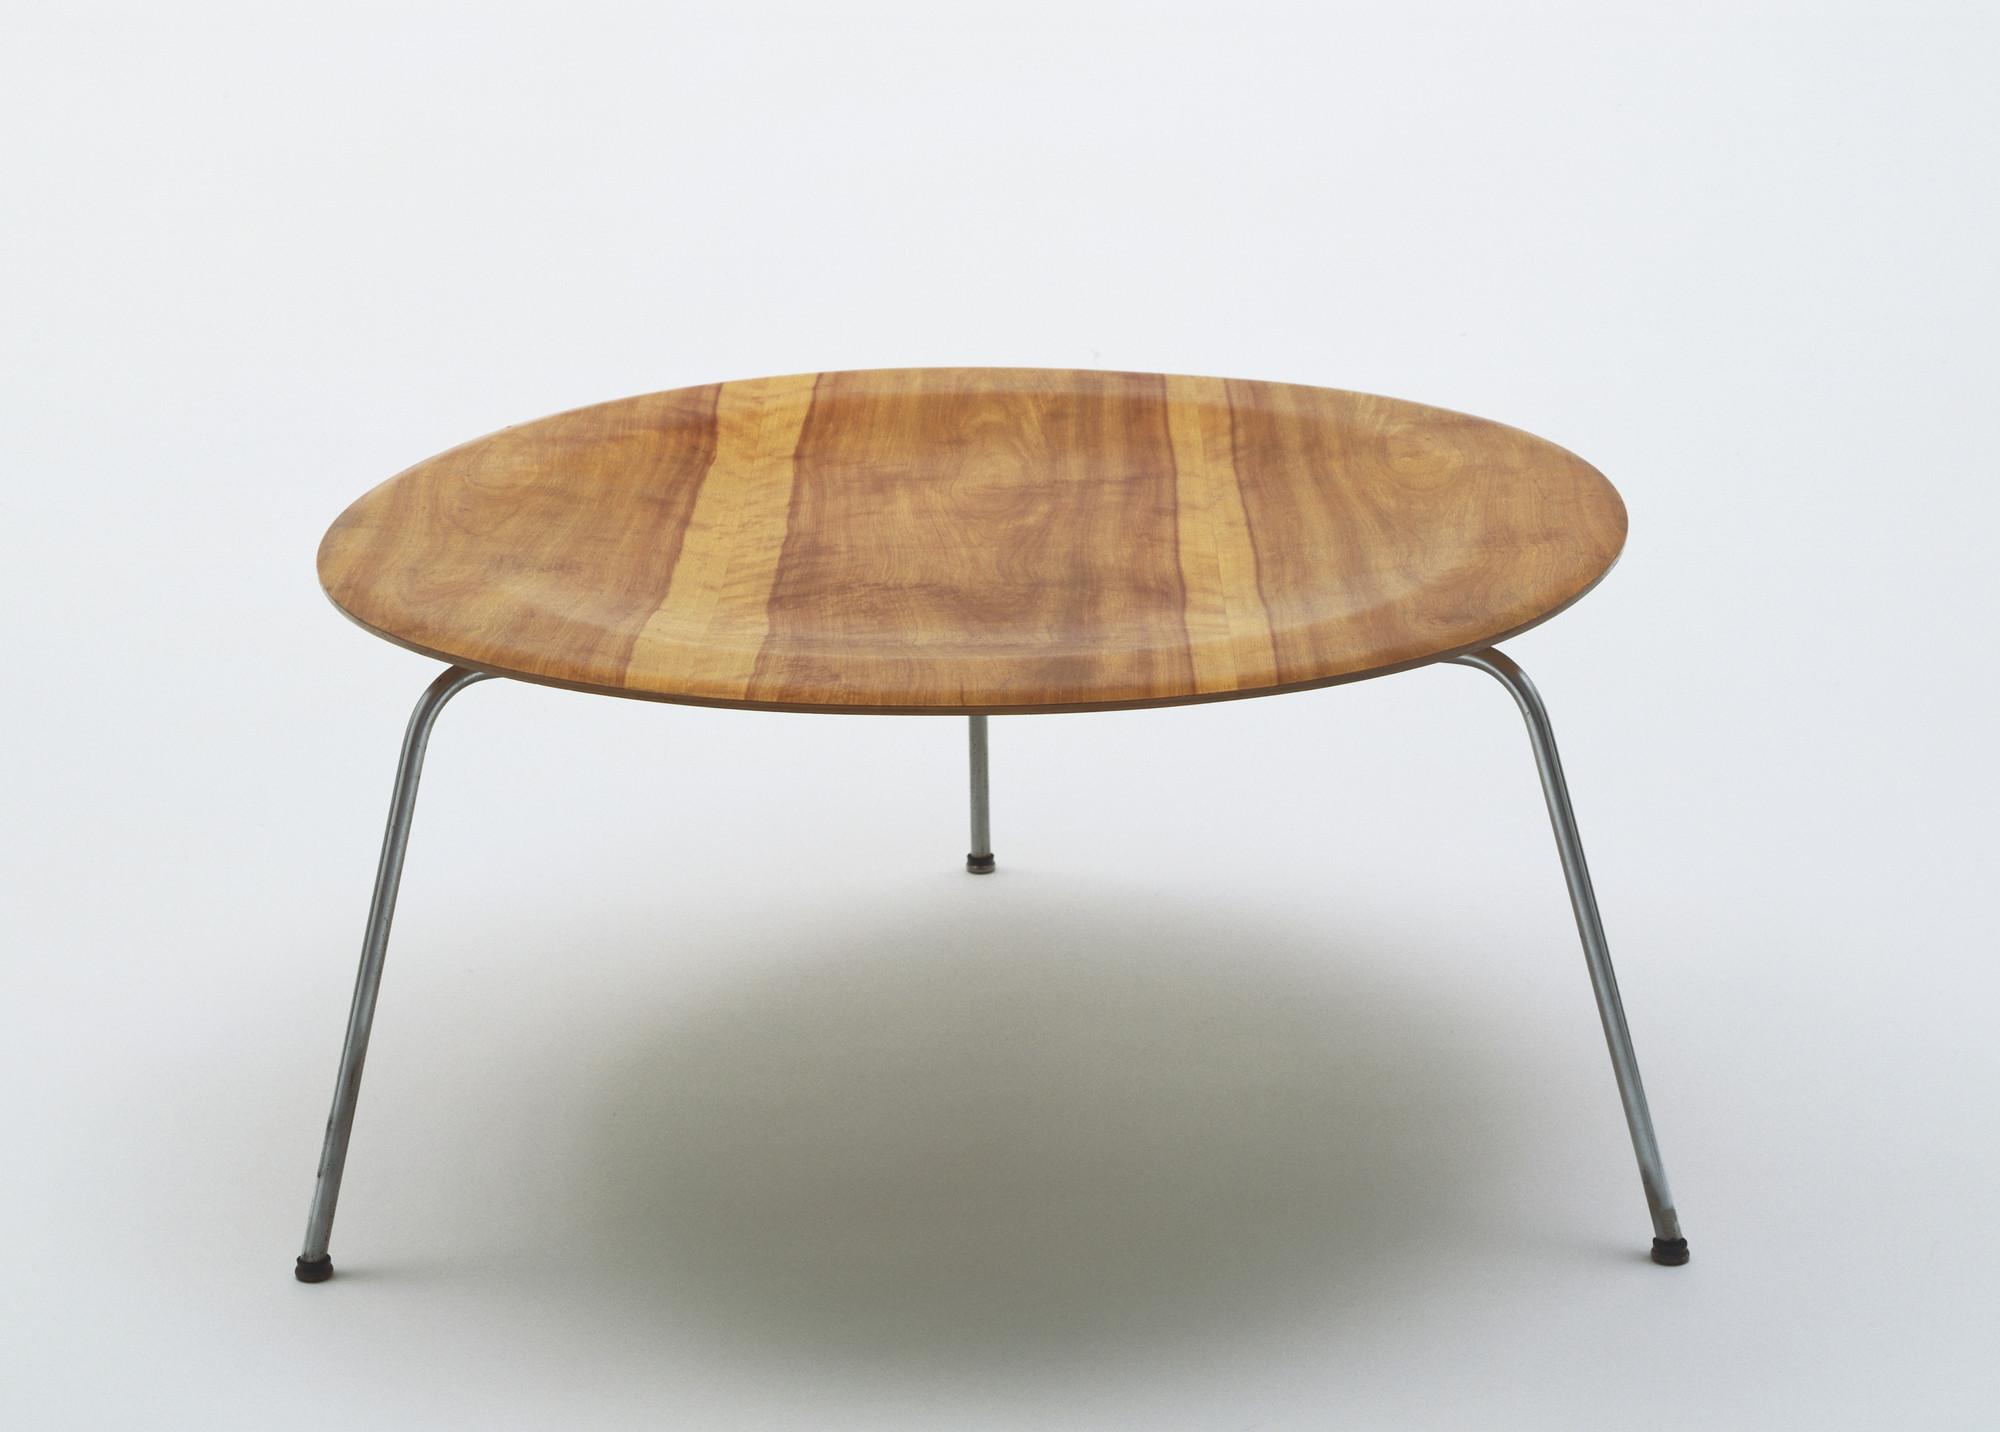 Charles Eames, Ray Eames. Coffee Table. 1946